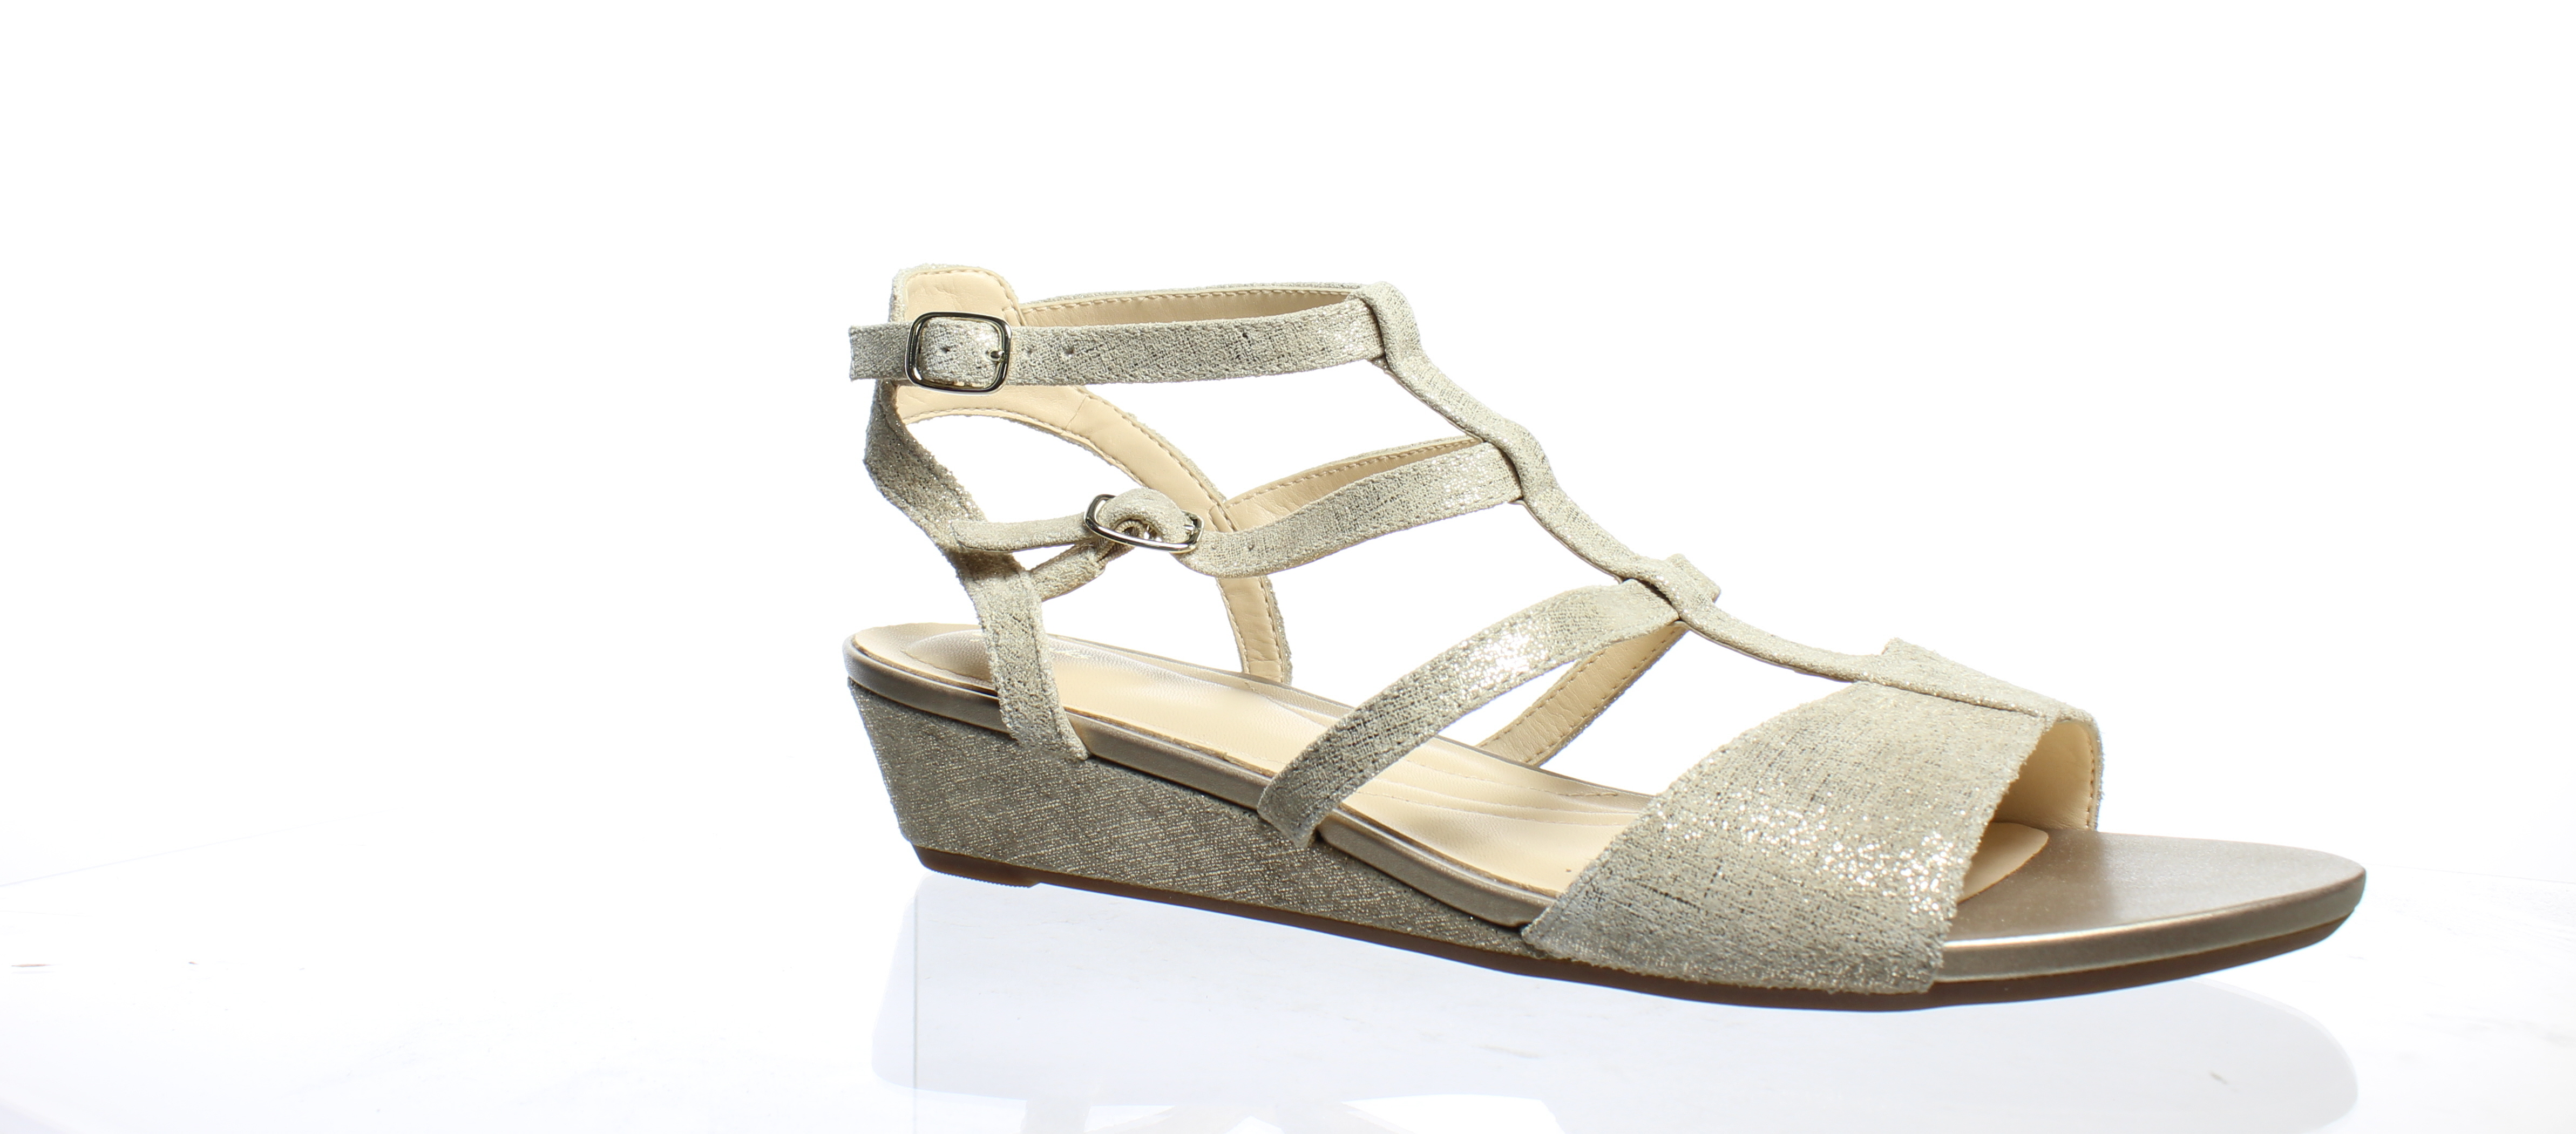 4f45913f67f4 Clarks Womens Parram Spice Gold Suede Ankle Strap Heels Size 9.5 ...